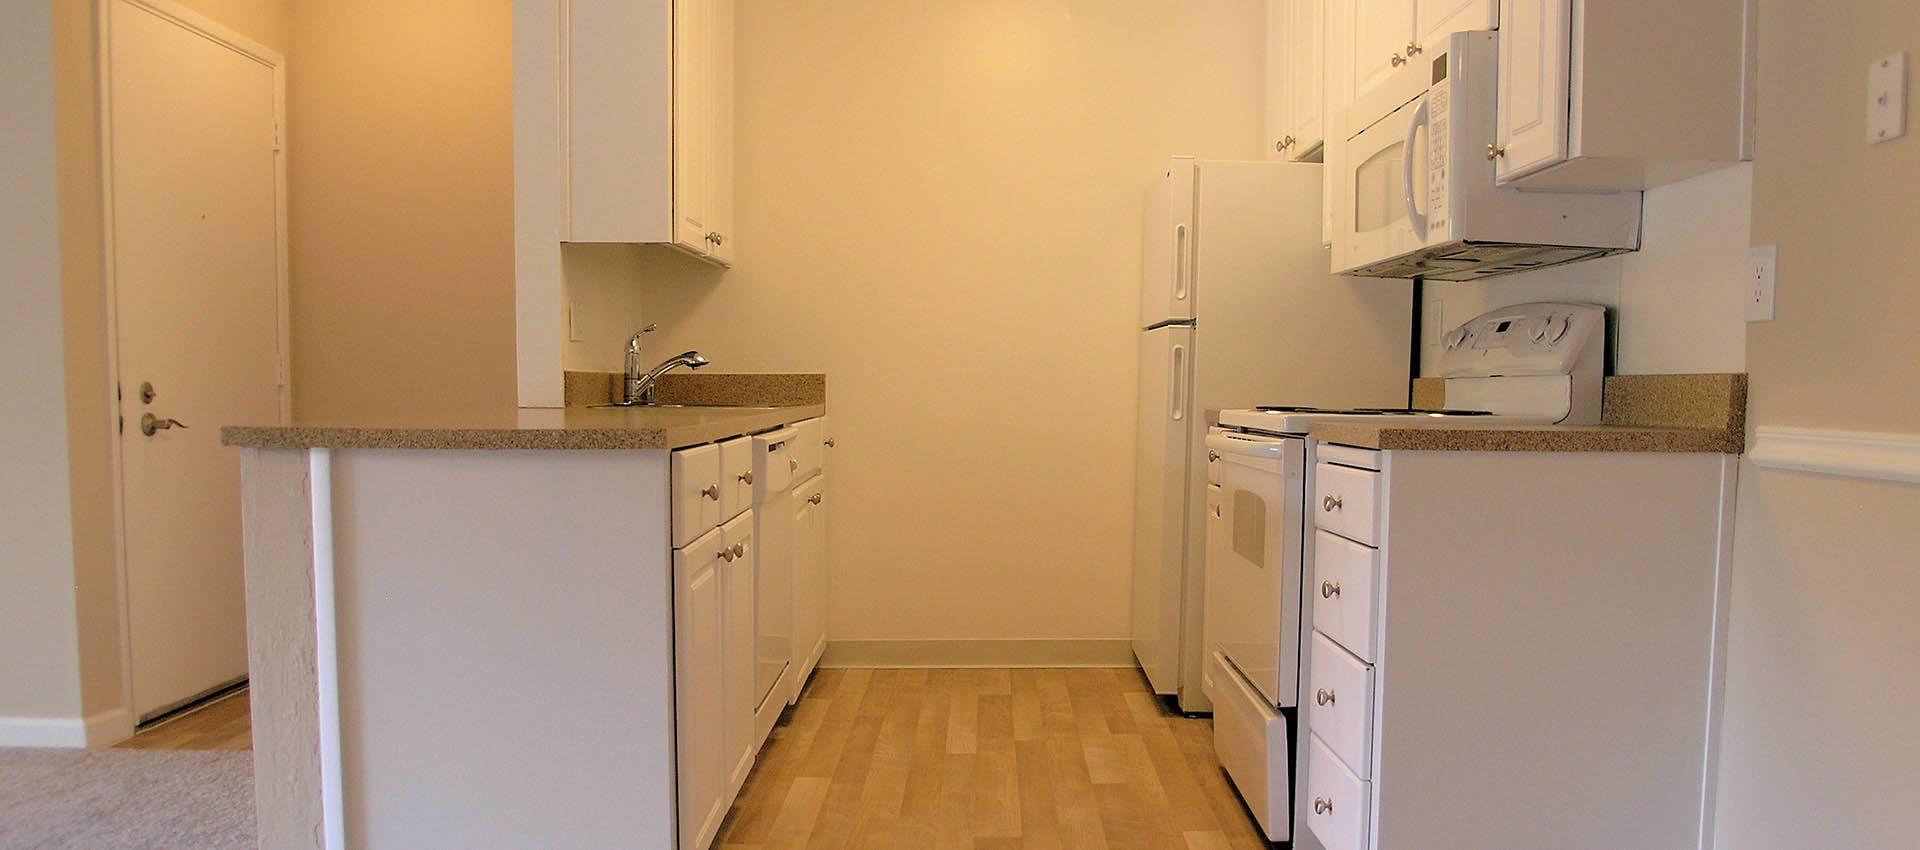 Hardwood floors at Ballena Village Apartment Homes in Alameda, CA